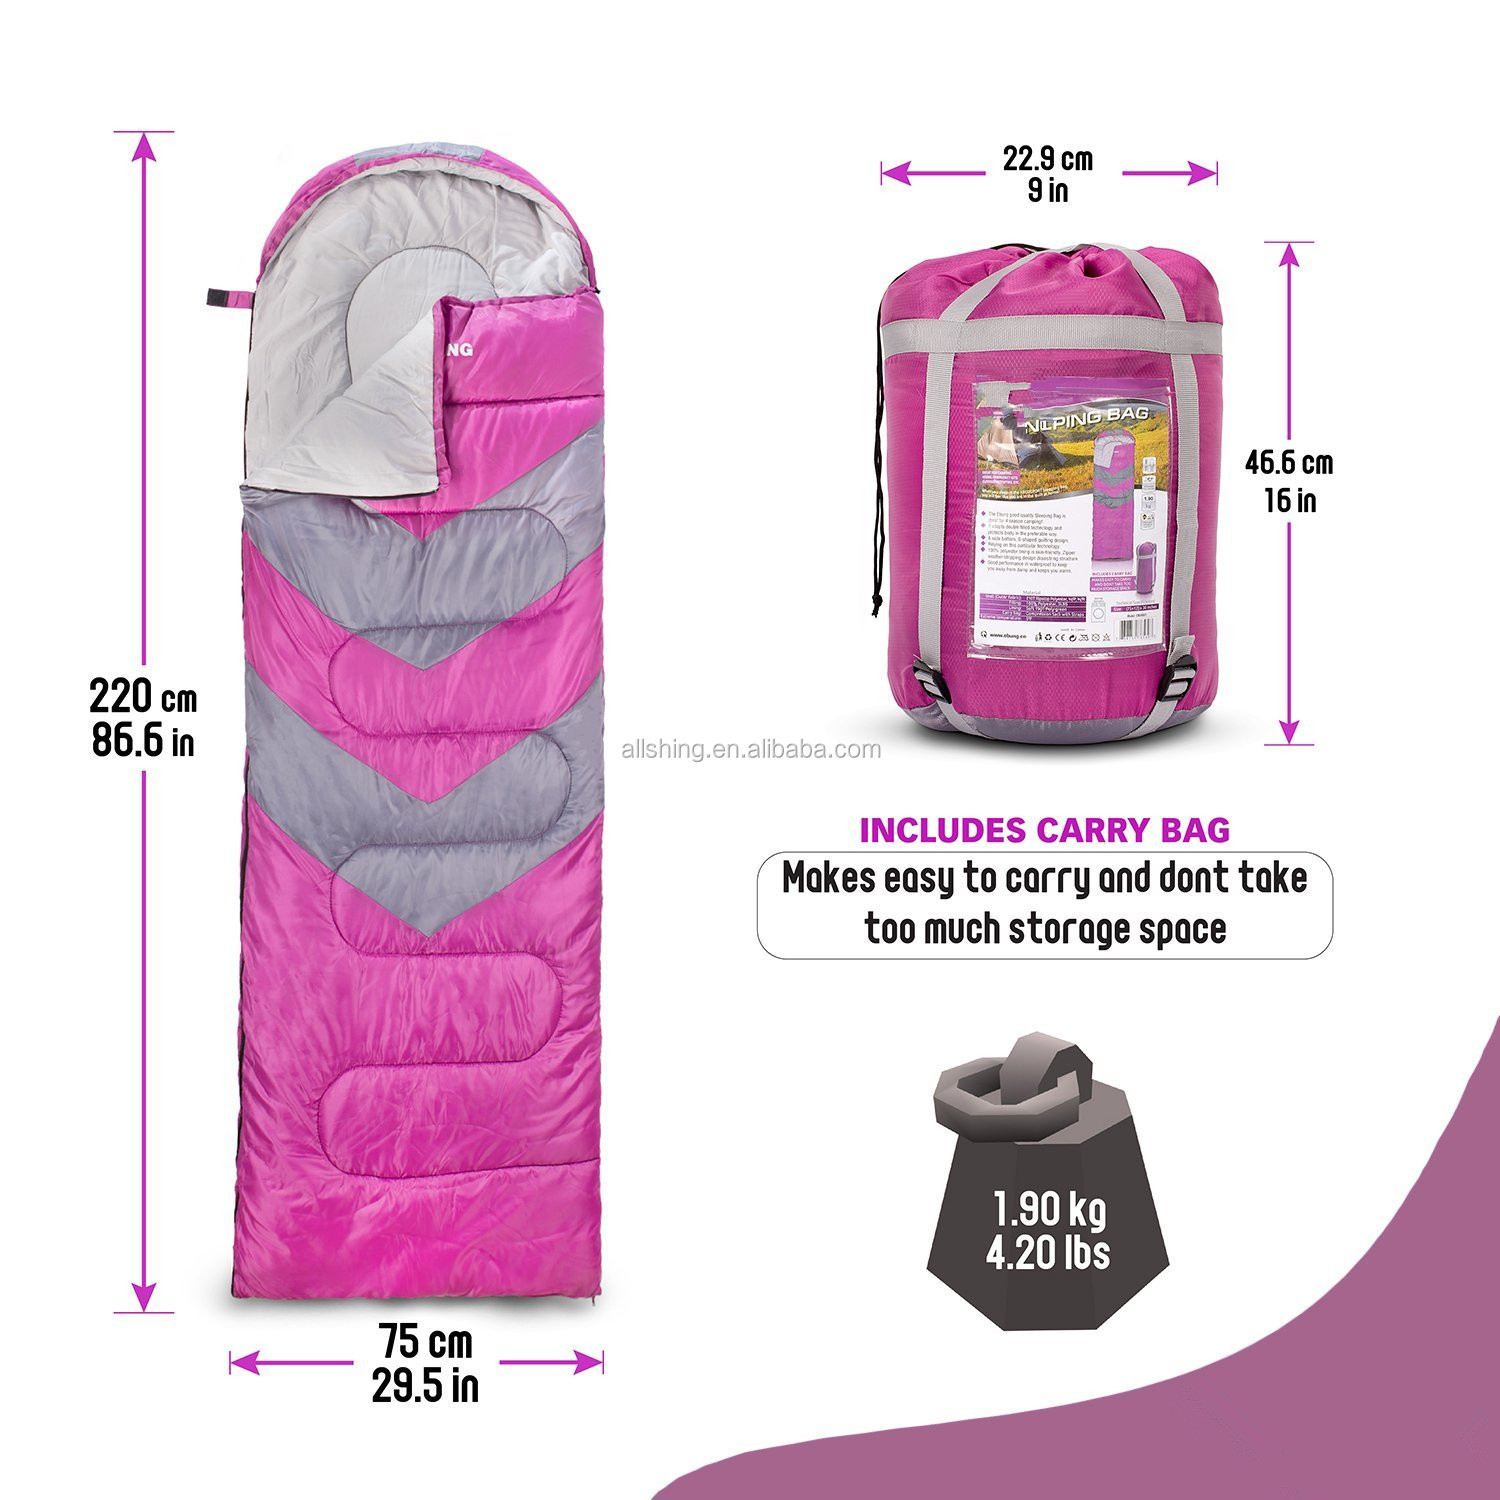 Wholesale Sleeping Bag Lightweight For Camping, Backpacking, Travel- Kids Men Women 3-4 Season Ultralight Compact Packable bag